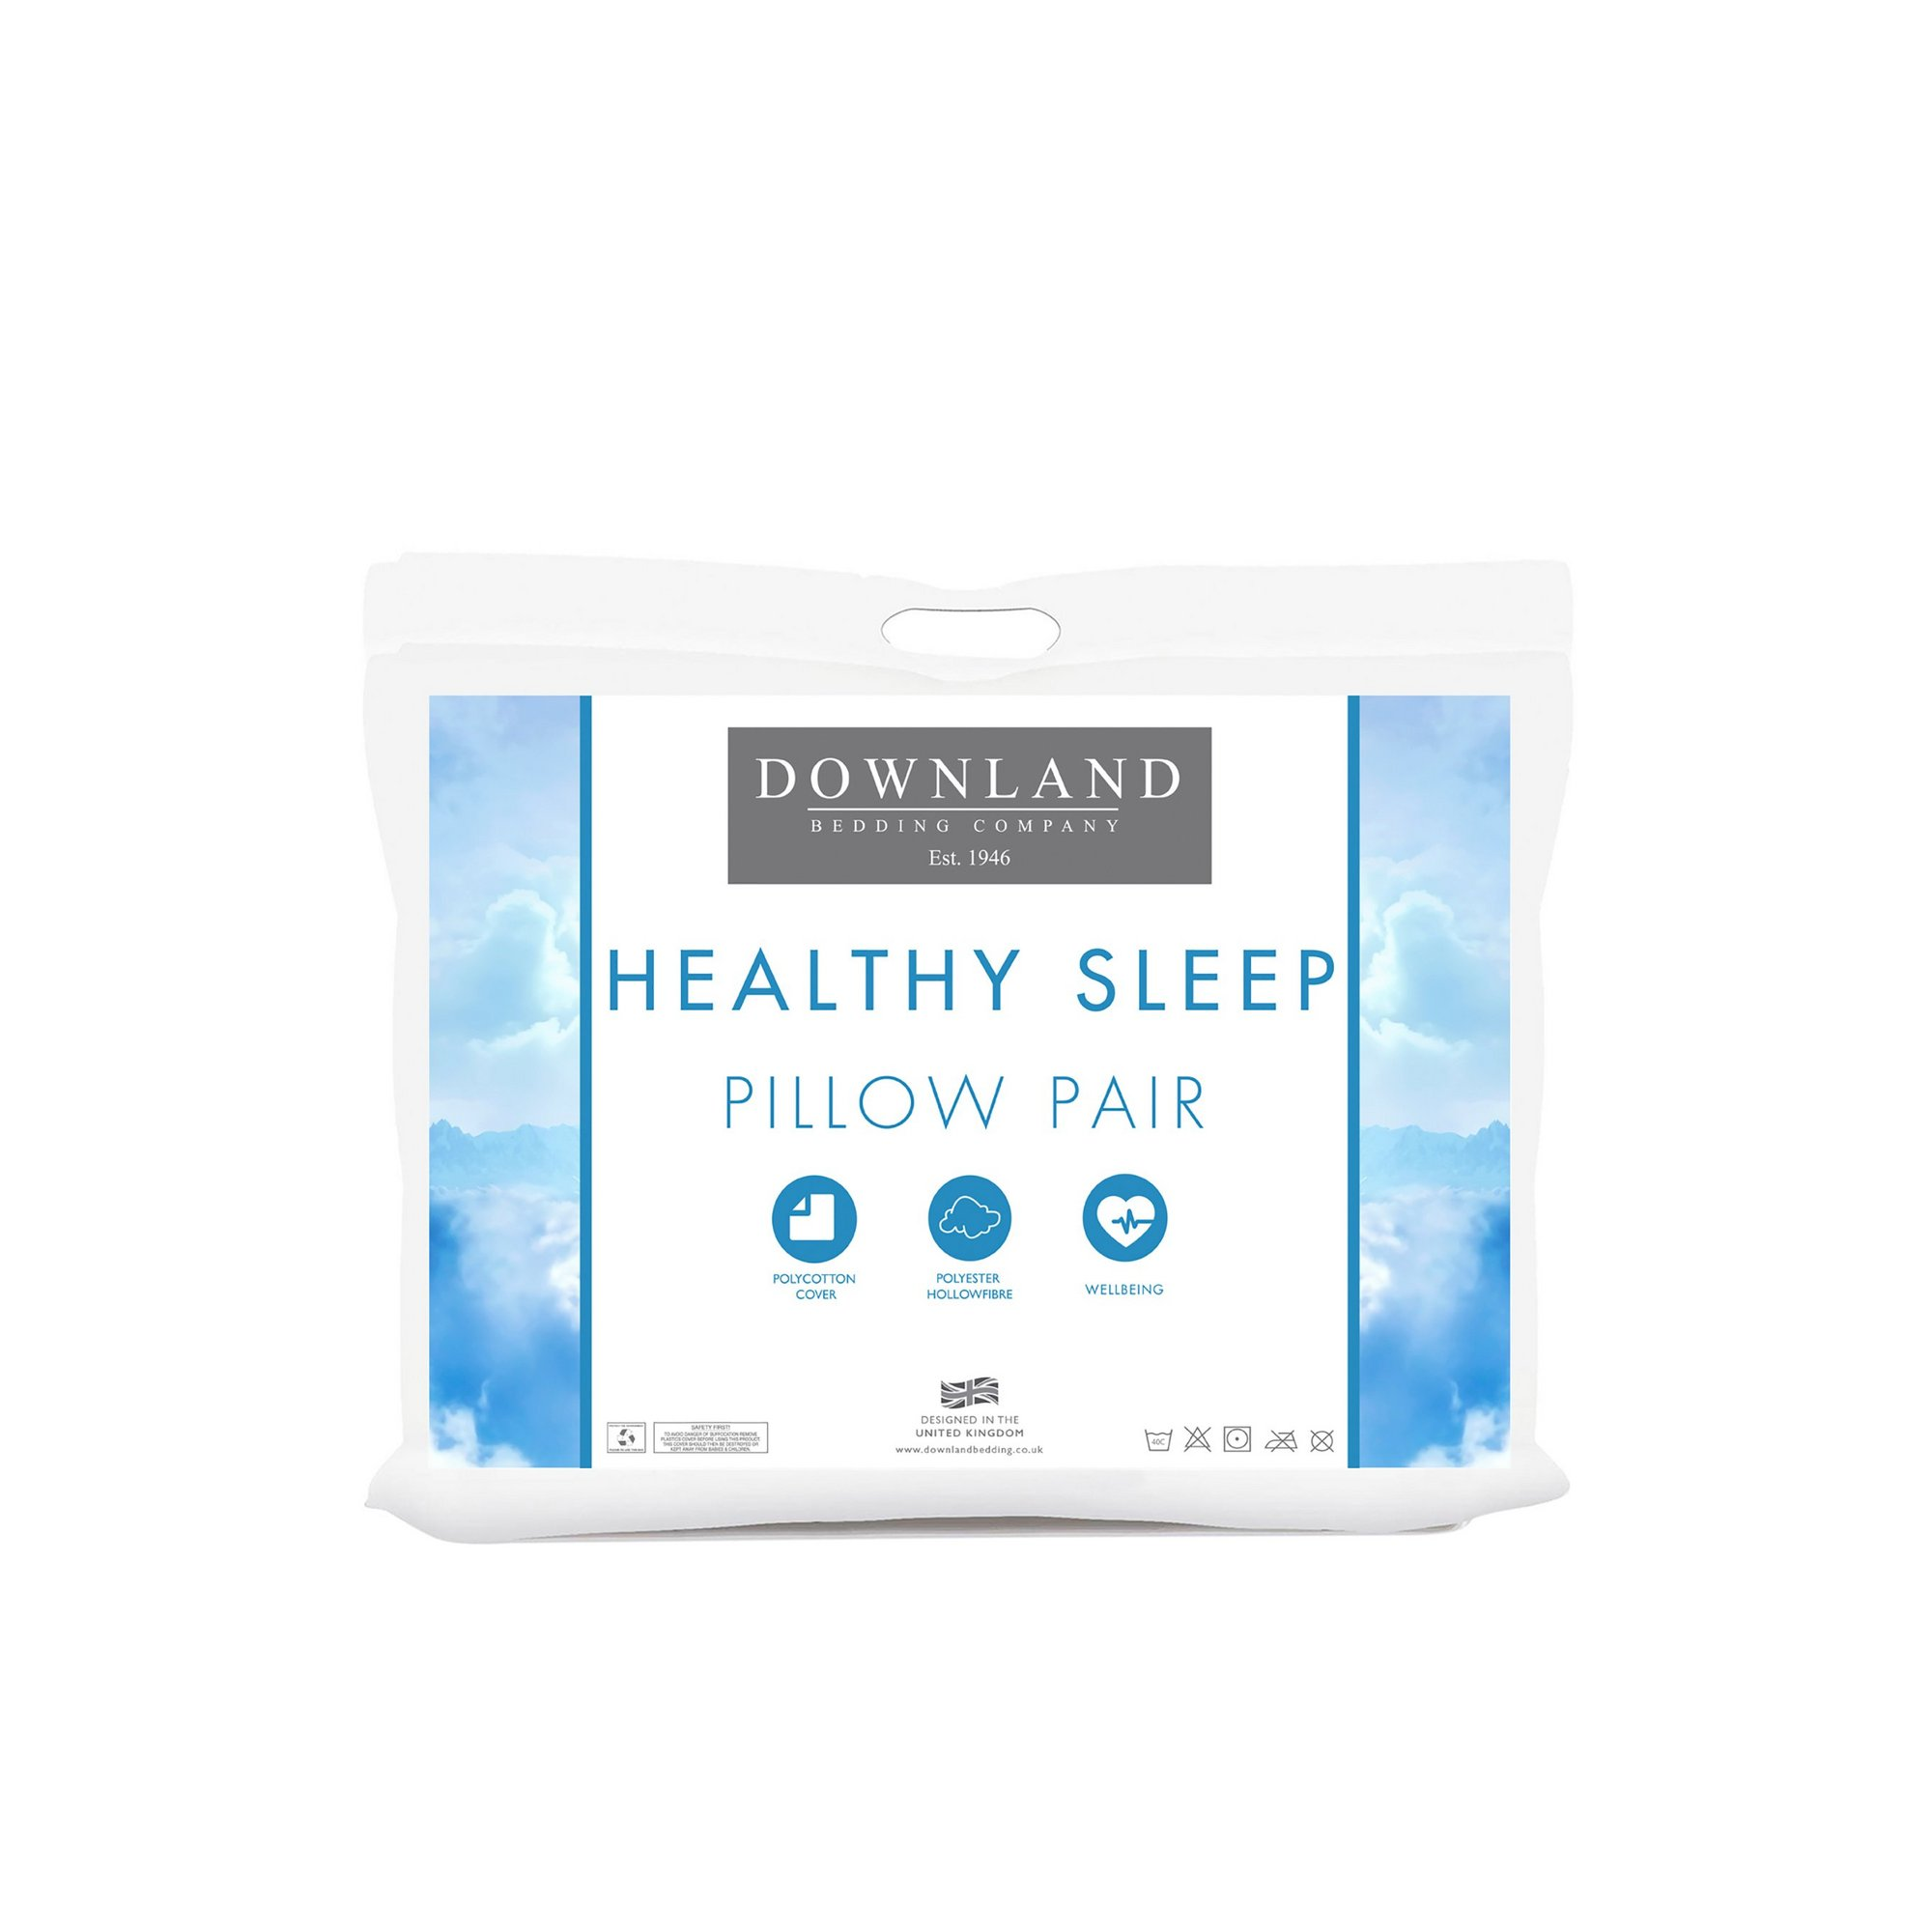 Image of Downland Healthy Sleep Pack of Pillows